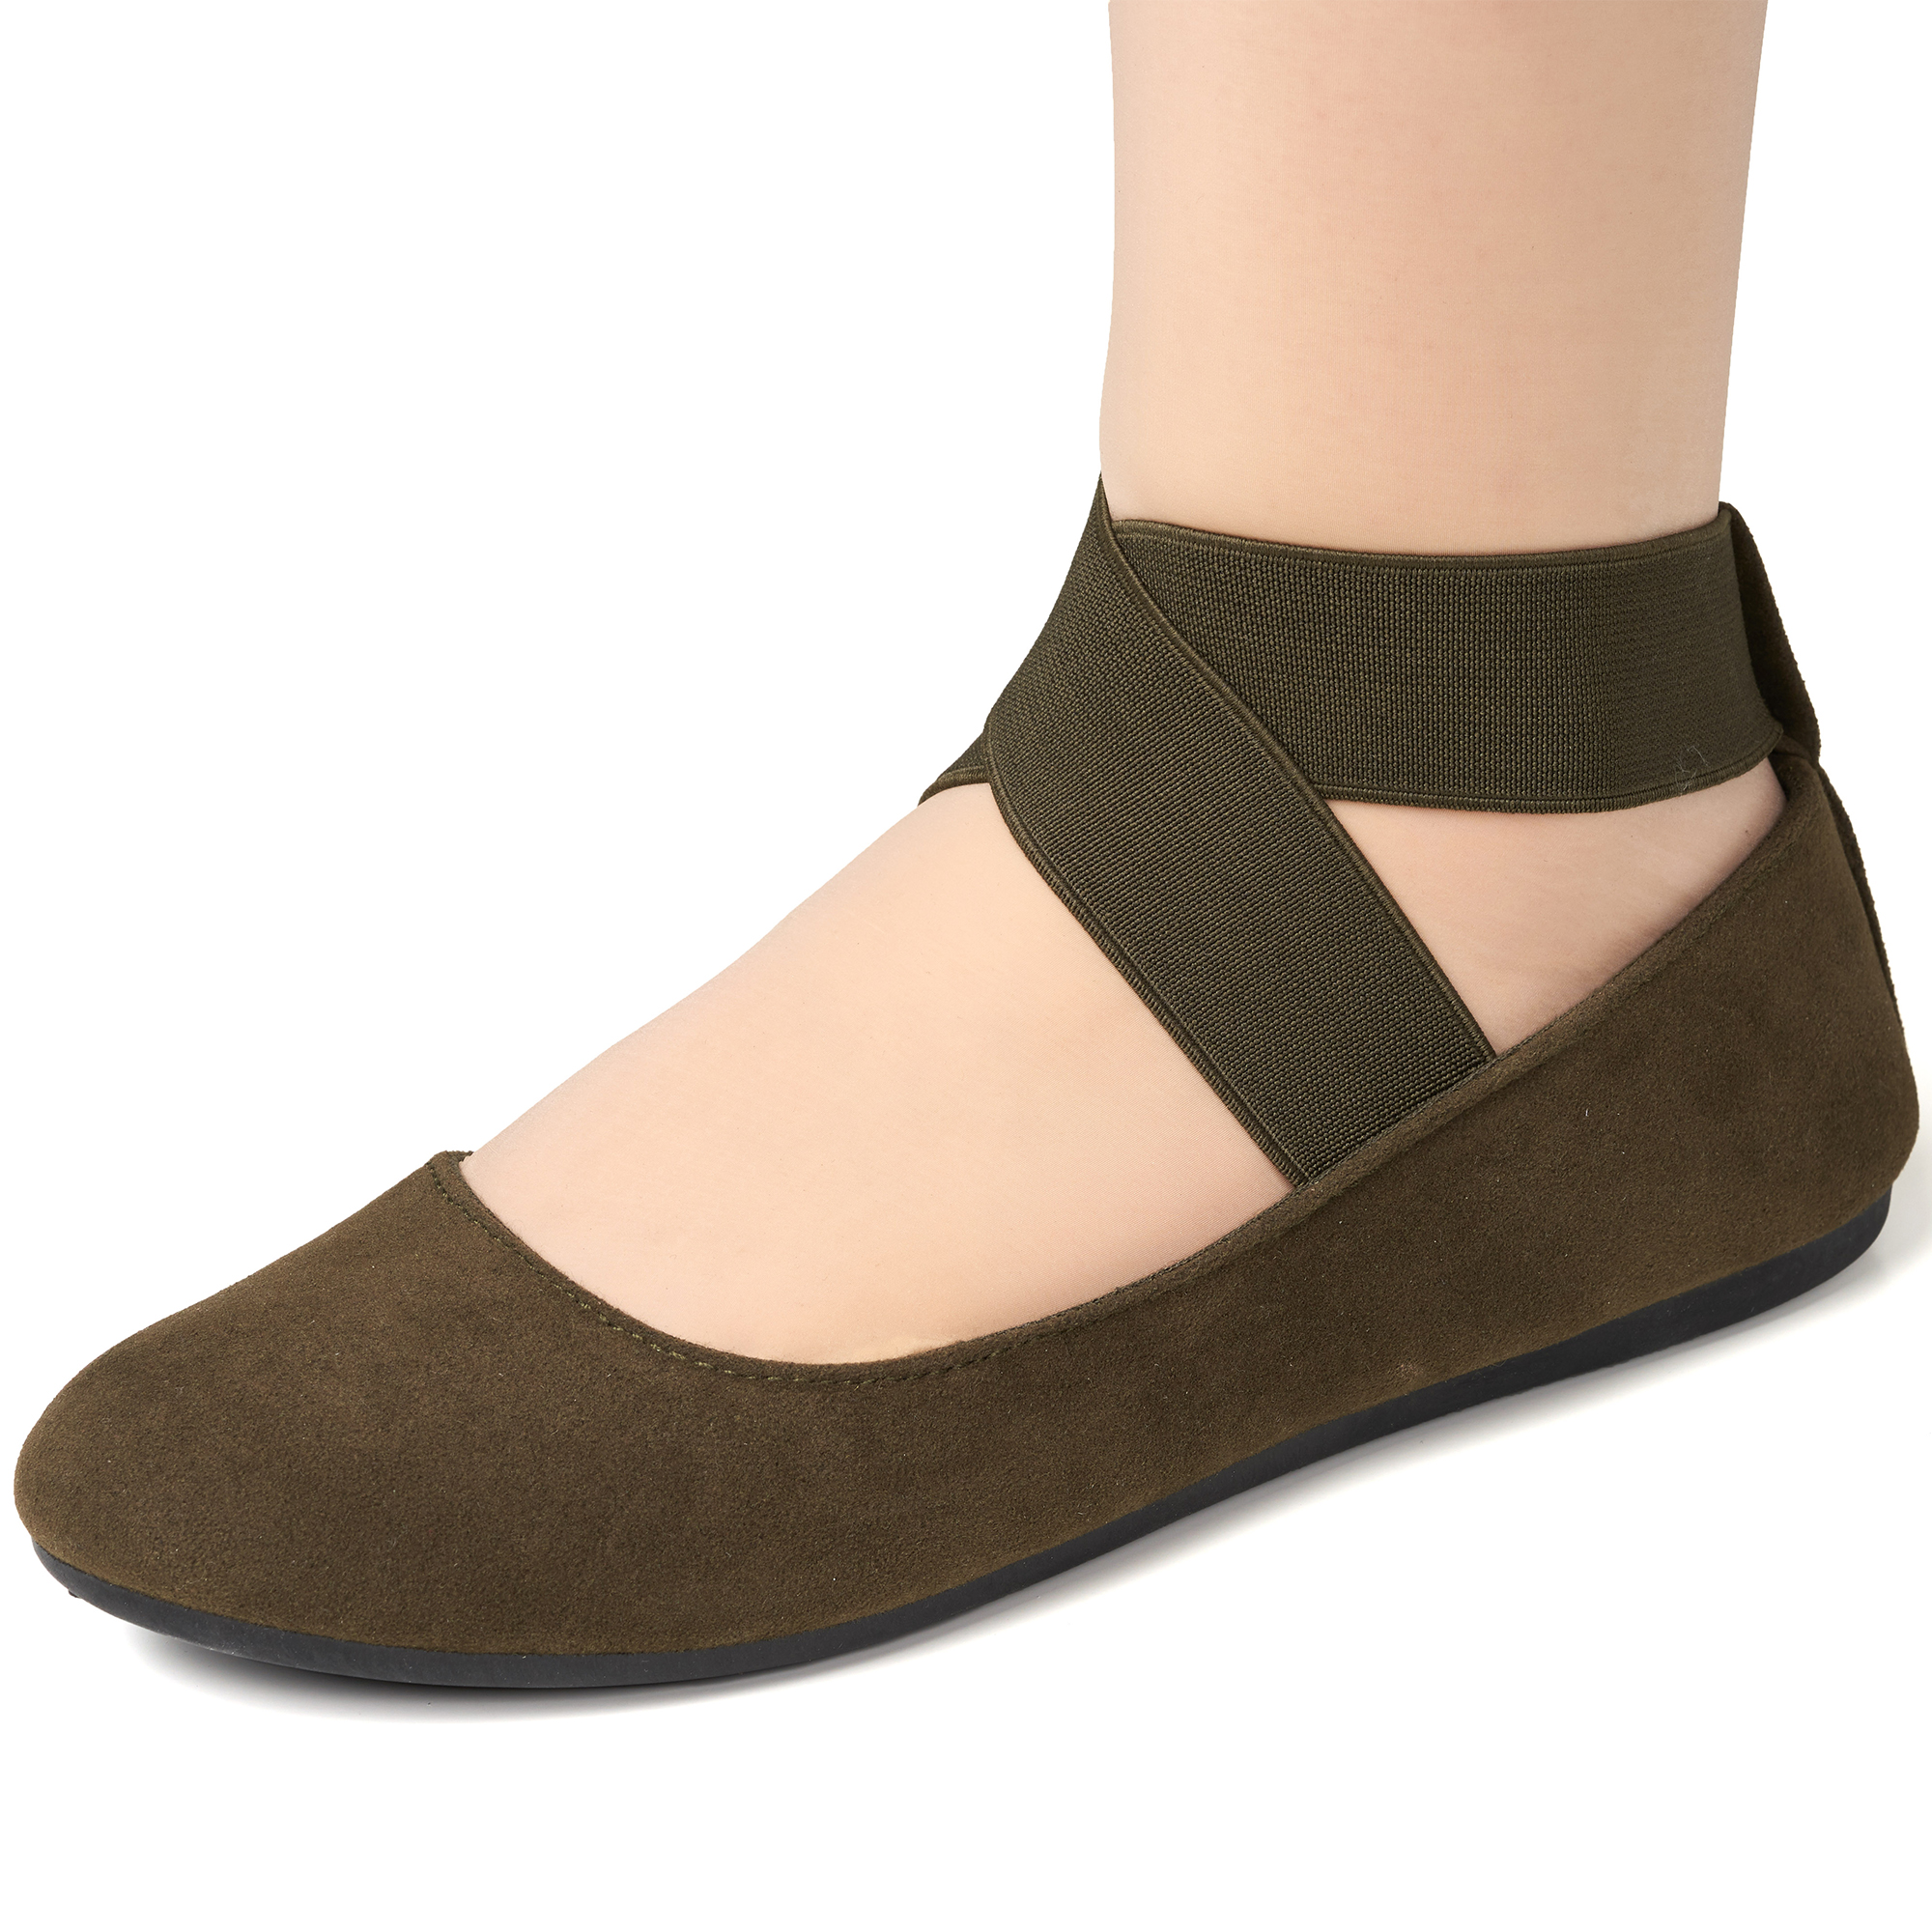 Alpine-Swiss-Peony-Womens-Ballet-Flats-Elastic-Ankle-Strap-Shoes-Slip-On-Loafers thumbnail 49